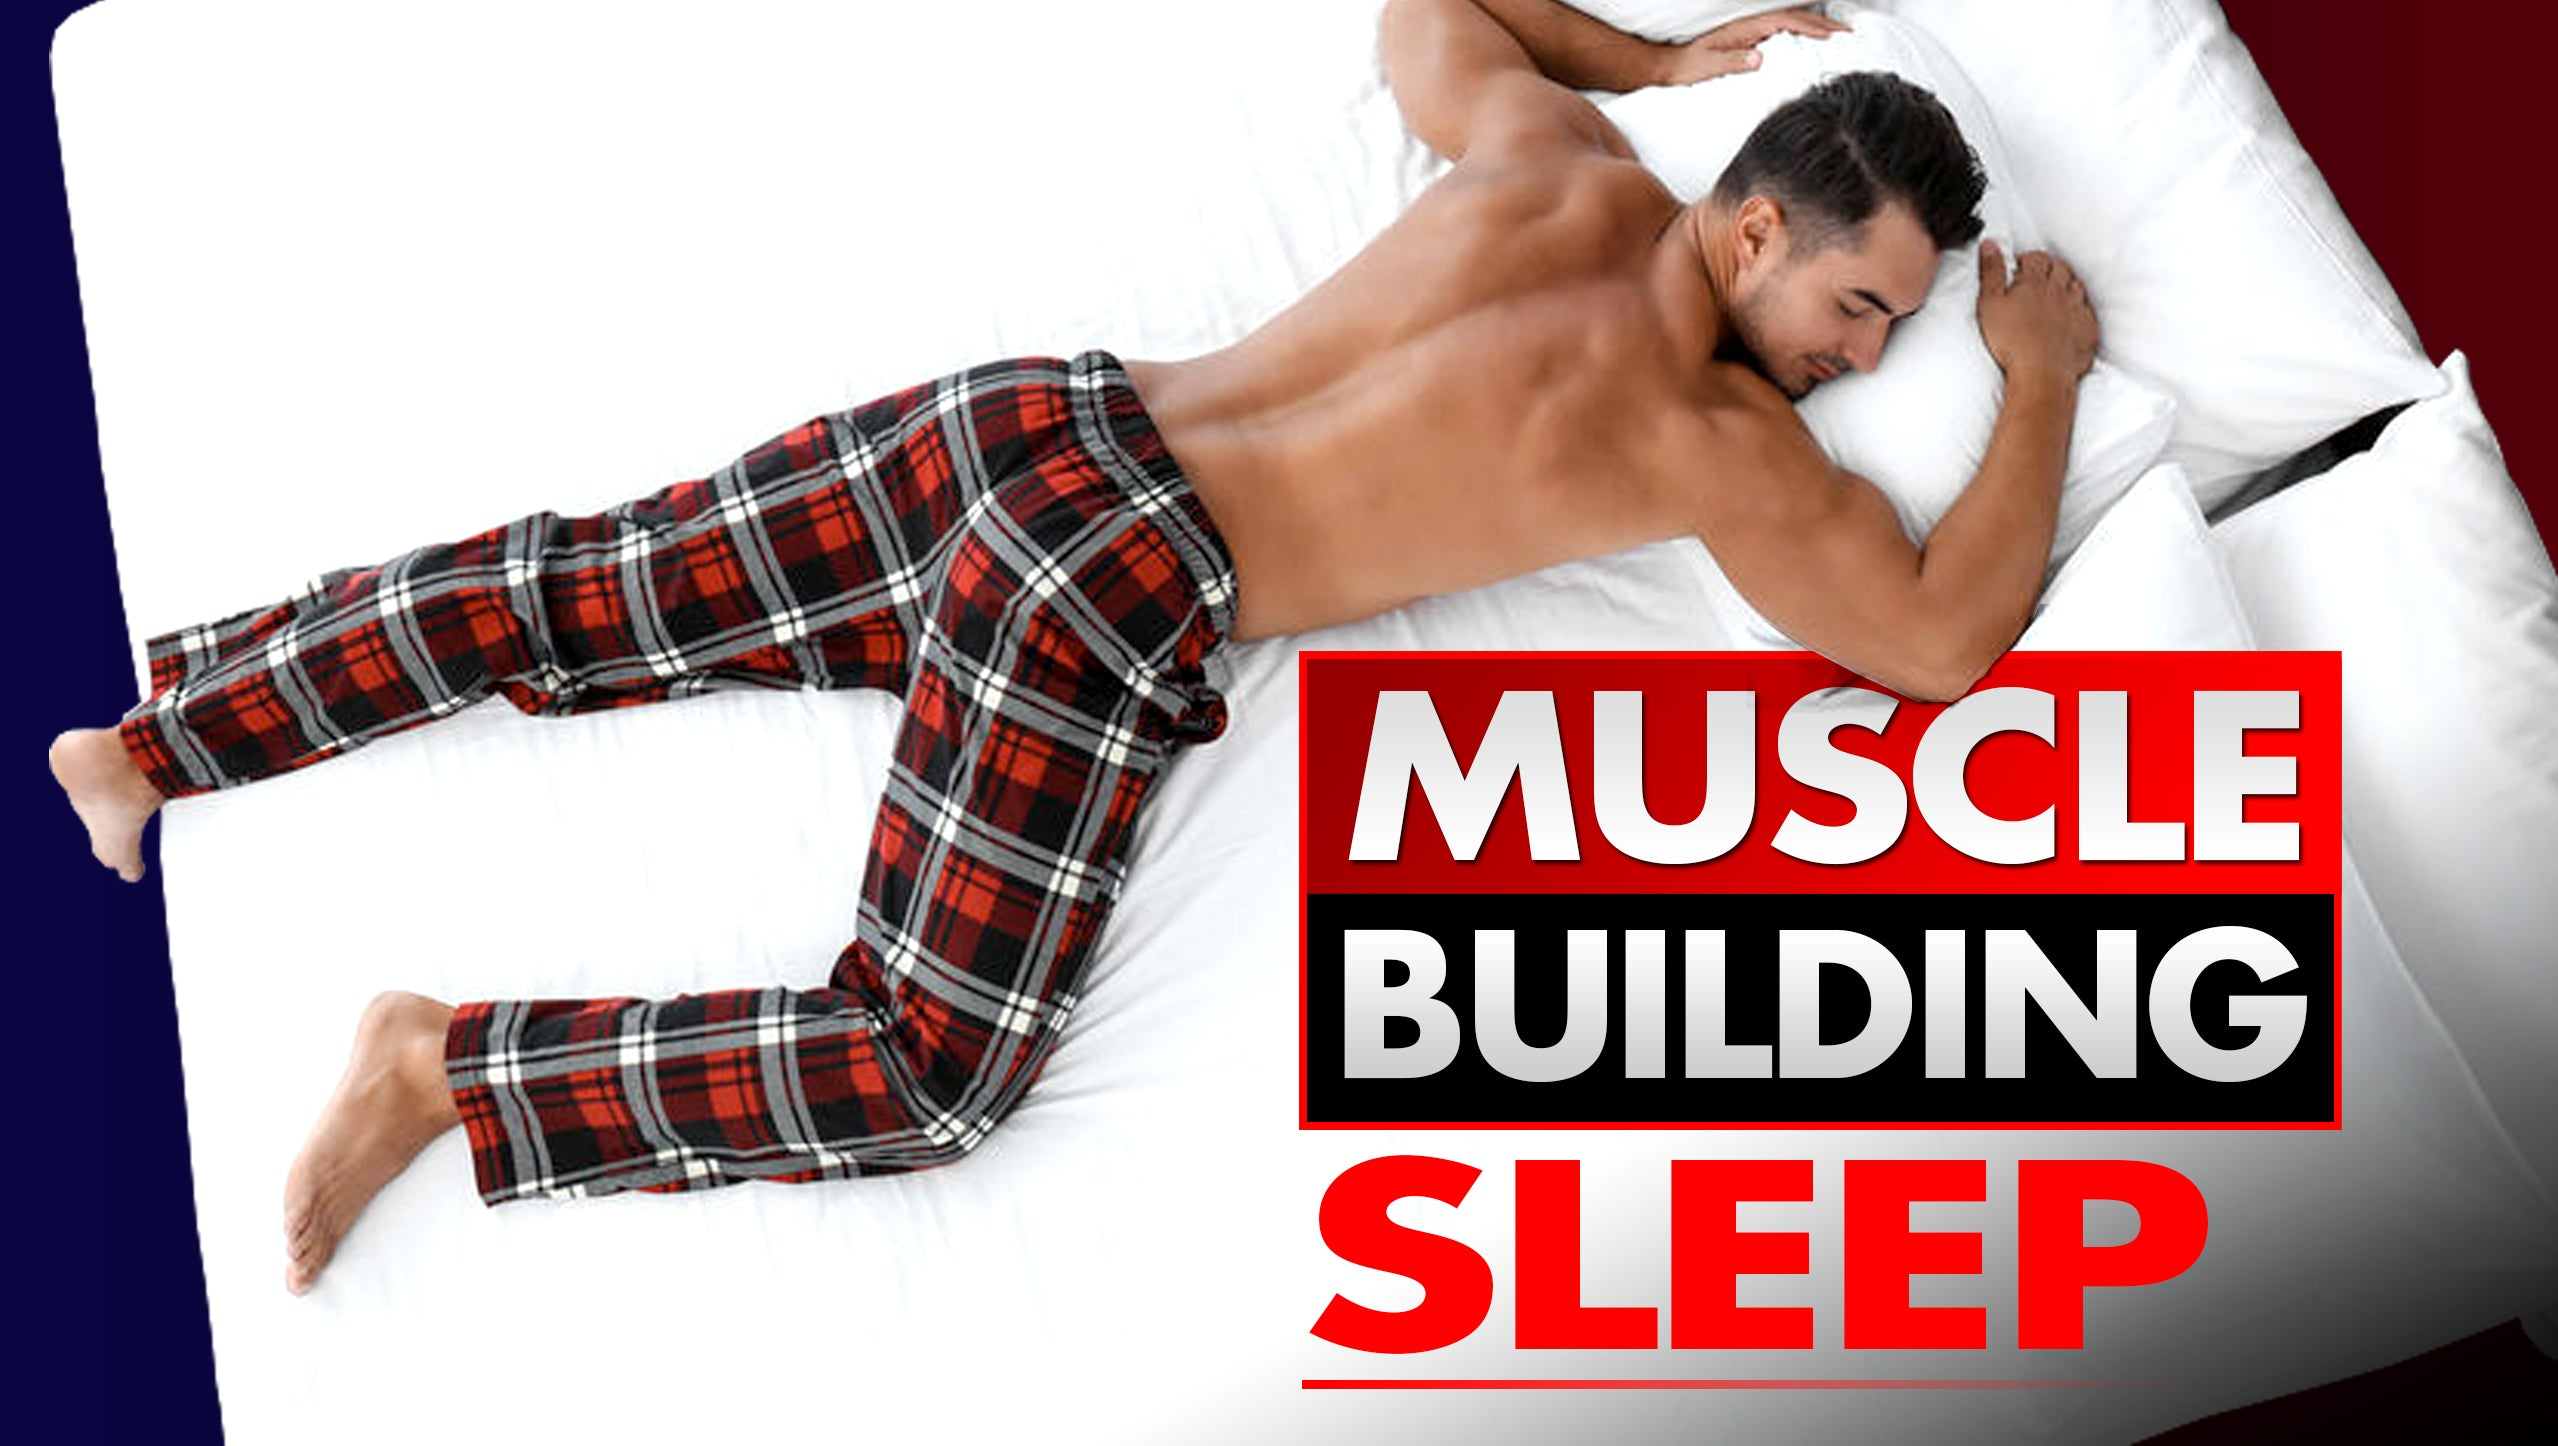 Is It Really Possible To Build Muscle While You Sleep?